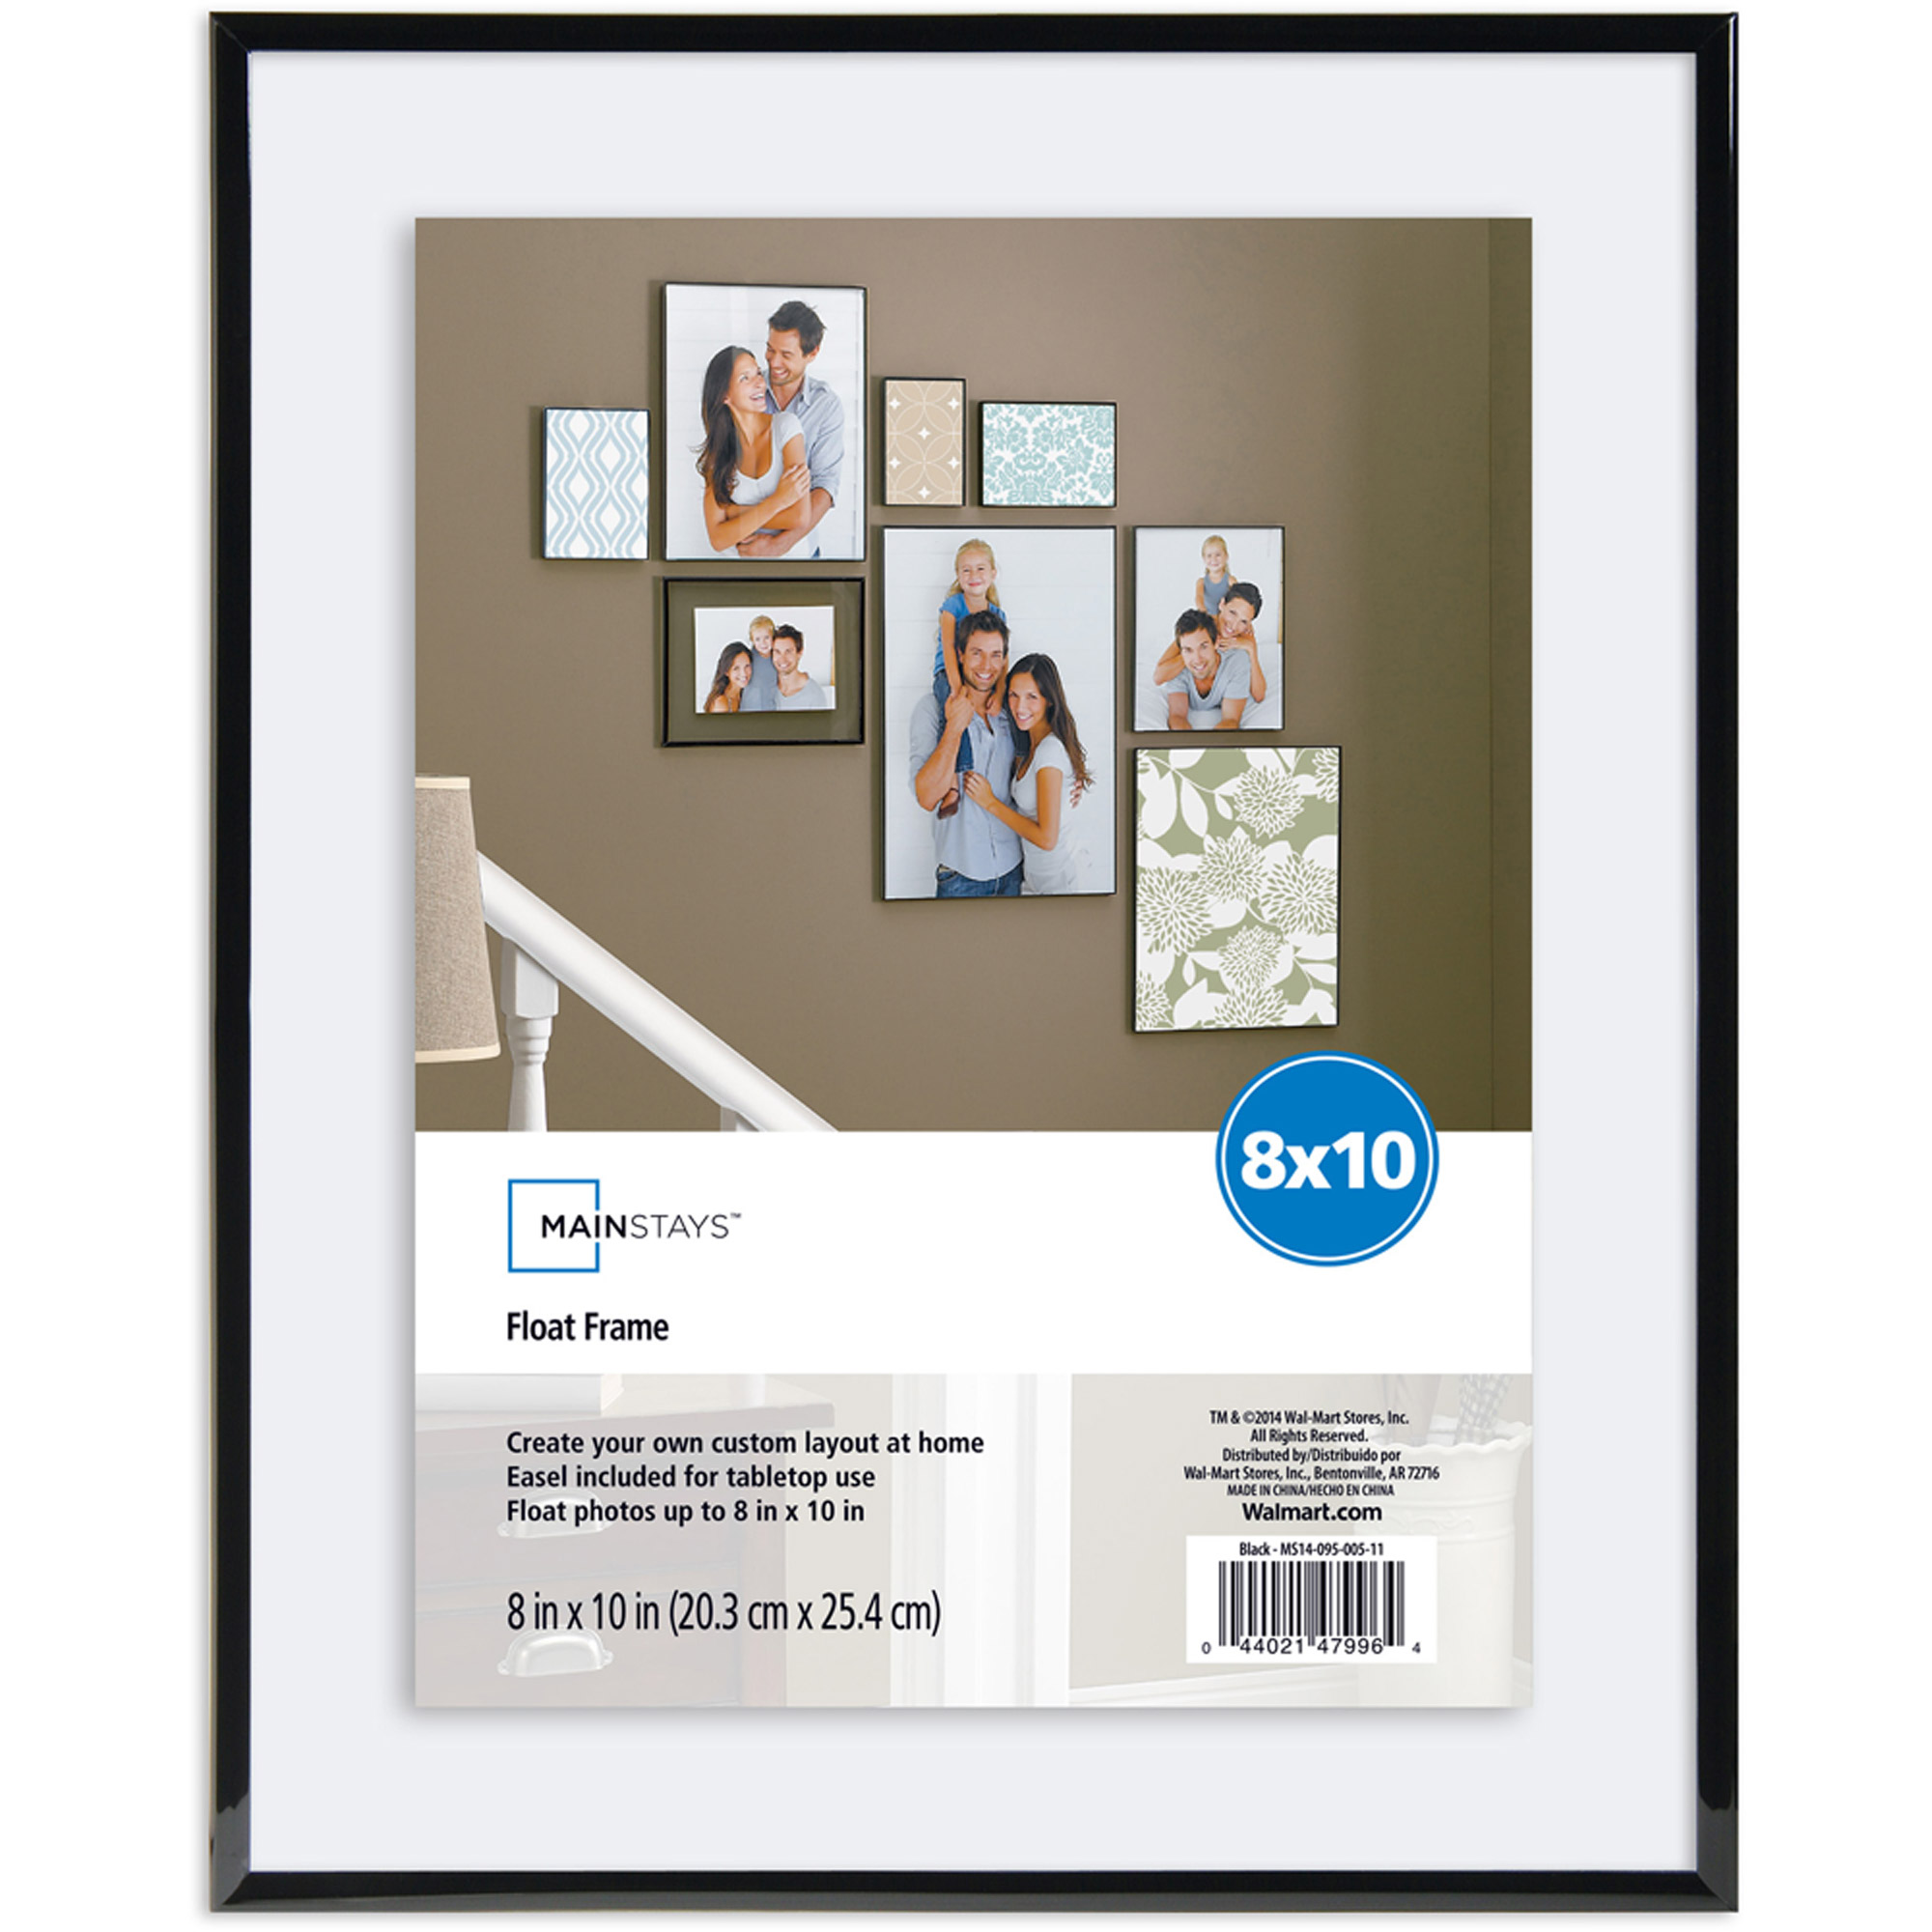 Mainstays 8x10 Flex Float Picture Frame - Walmart.com